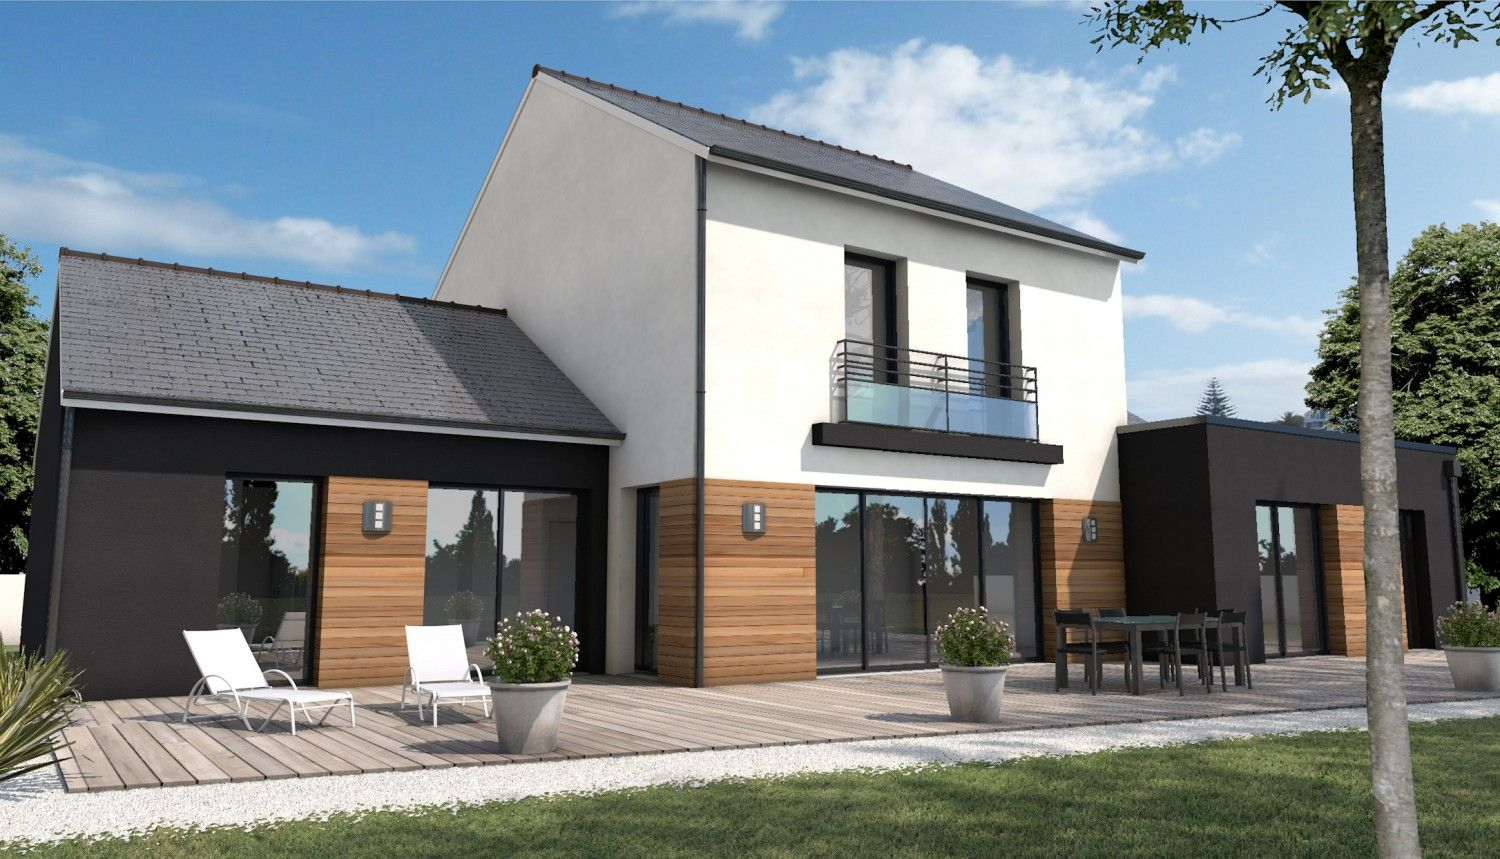 Depreux construction exteriors pinterest maisons for Extension contemporaine maison traditionnelle